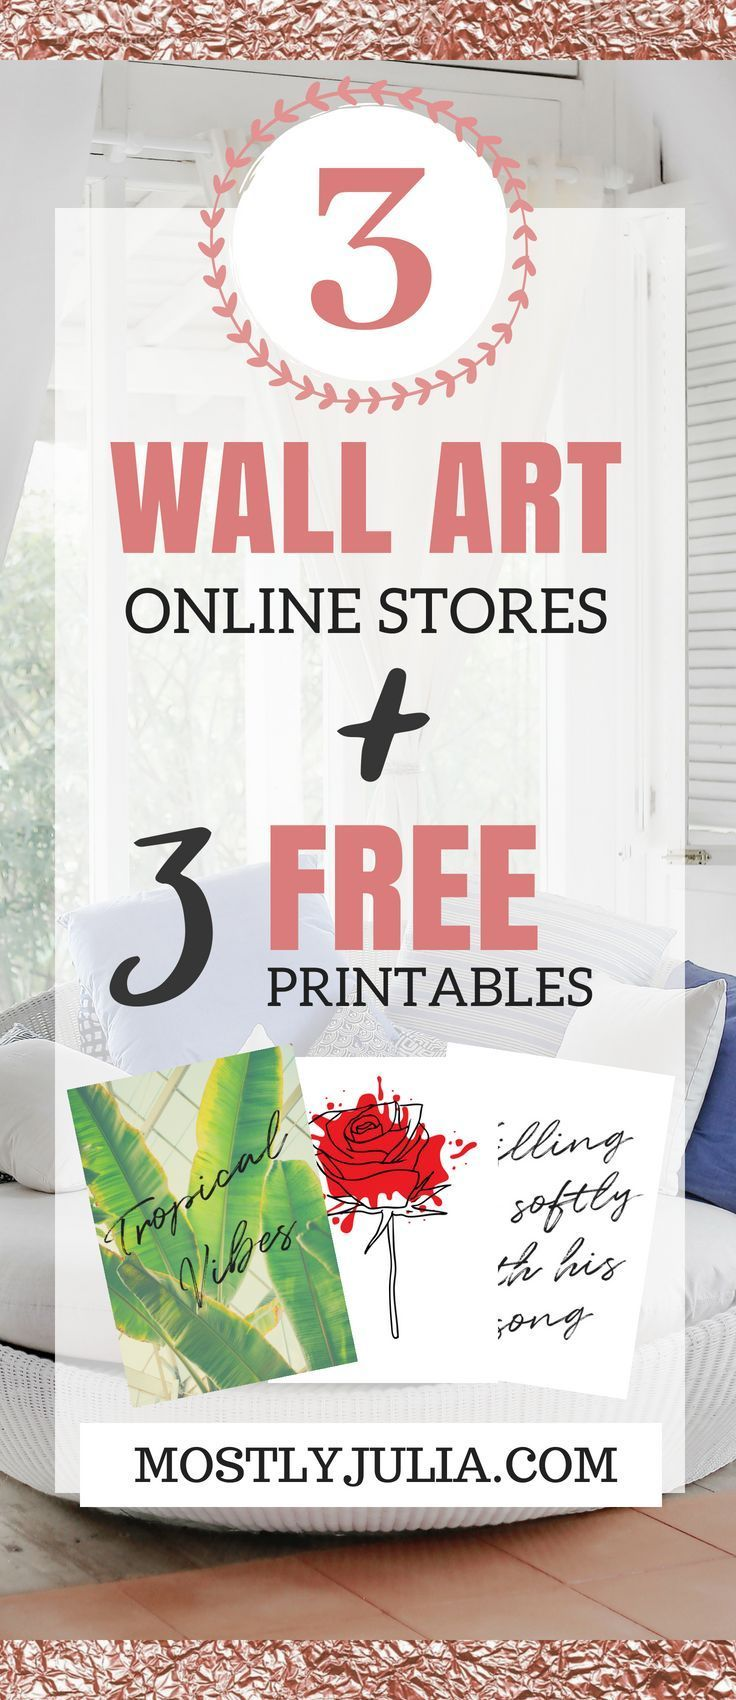 Where to get unique and affordable wall art 3 free wall art printables printable freebies for your minimalist home decor diy prints